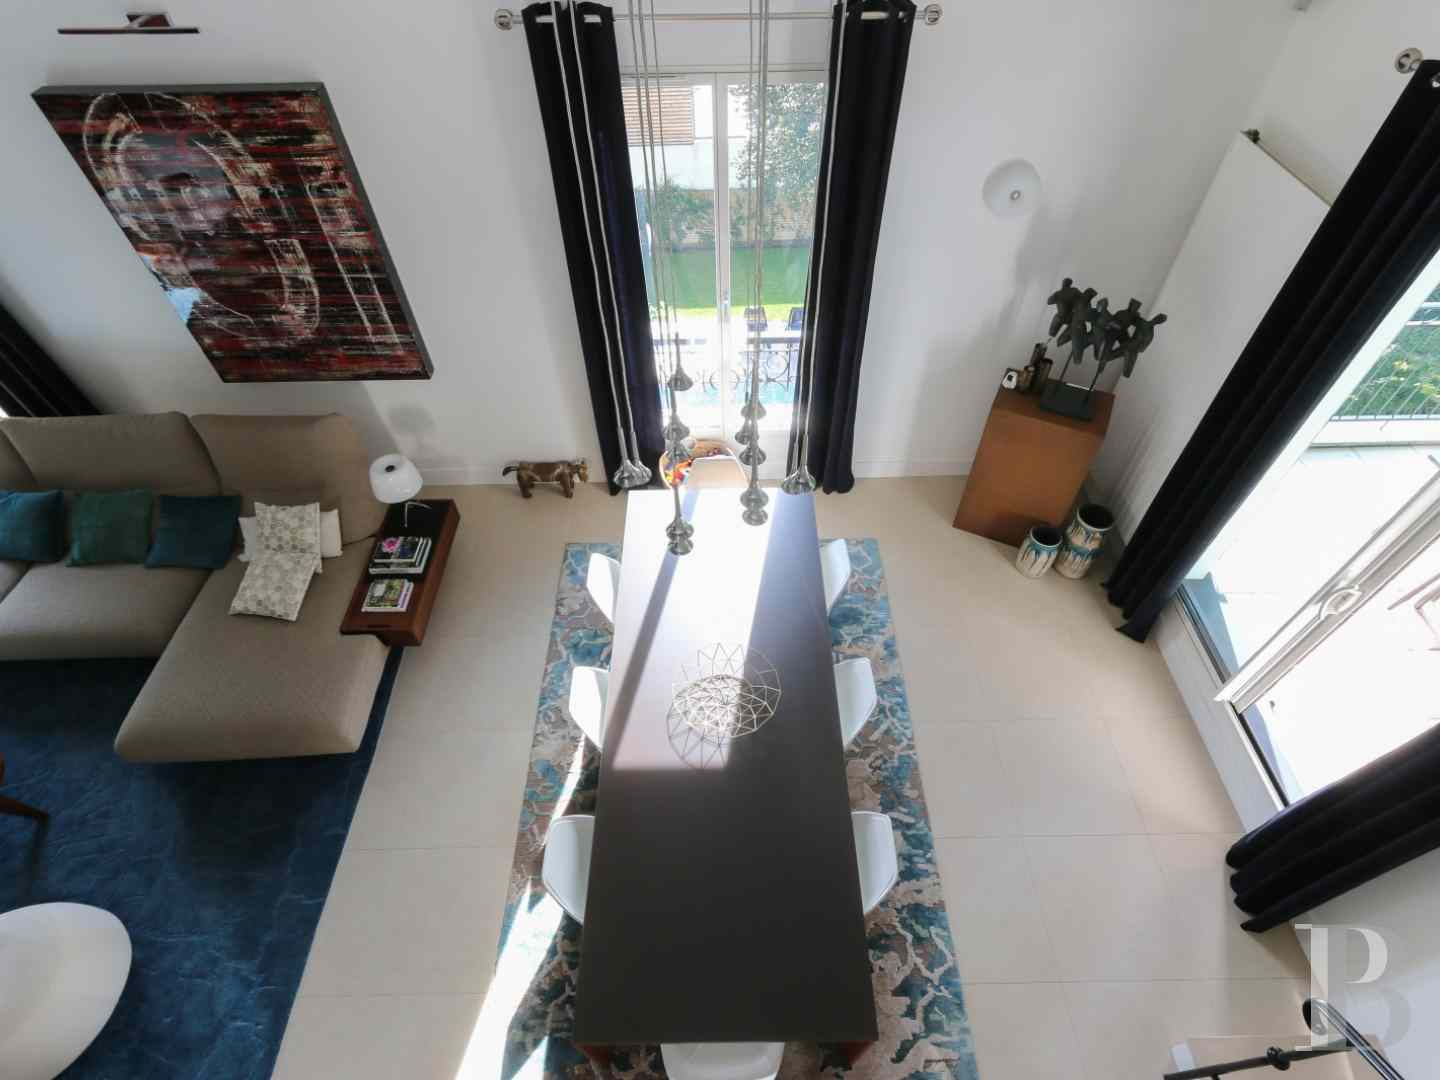 property for sale France paris residences 20th - 7 zoom